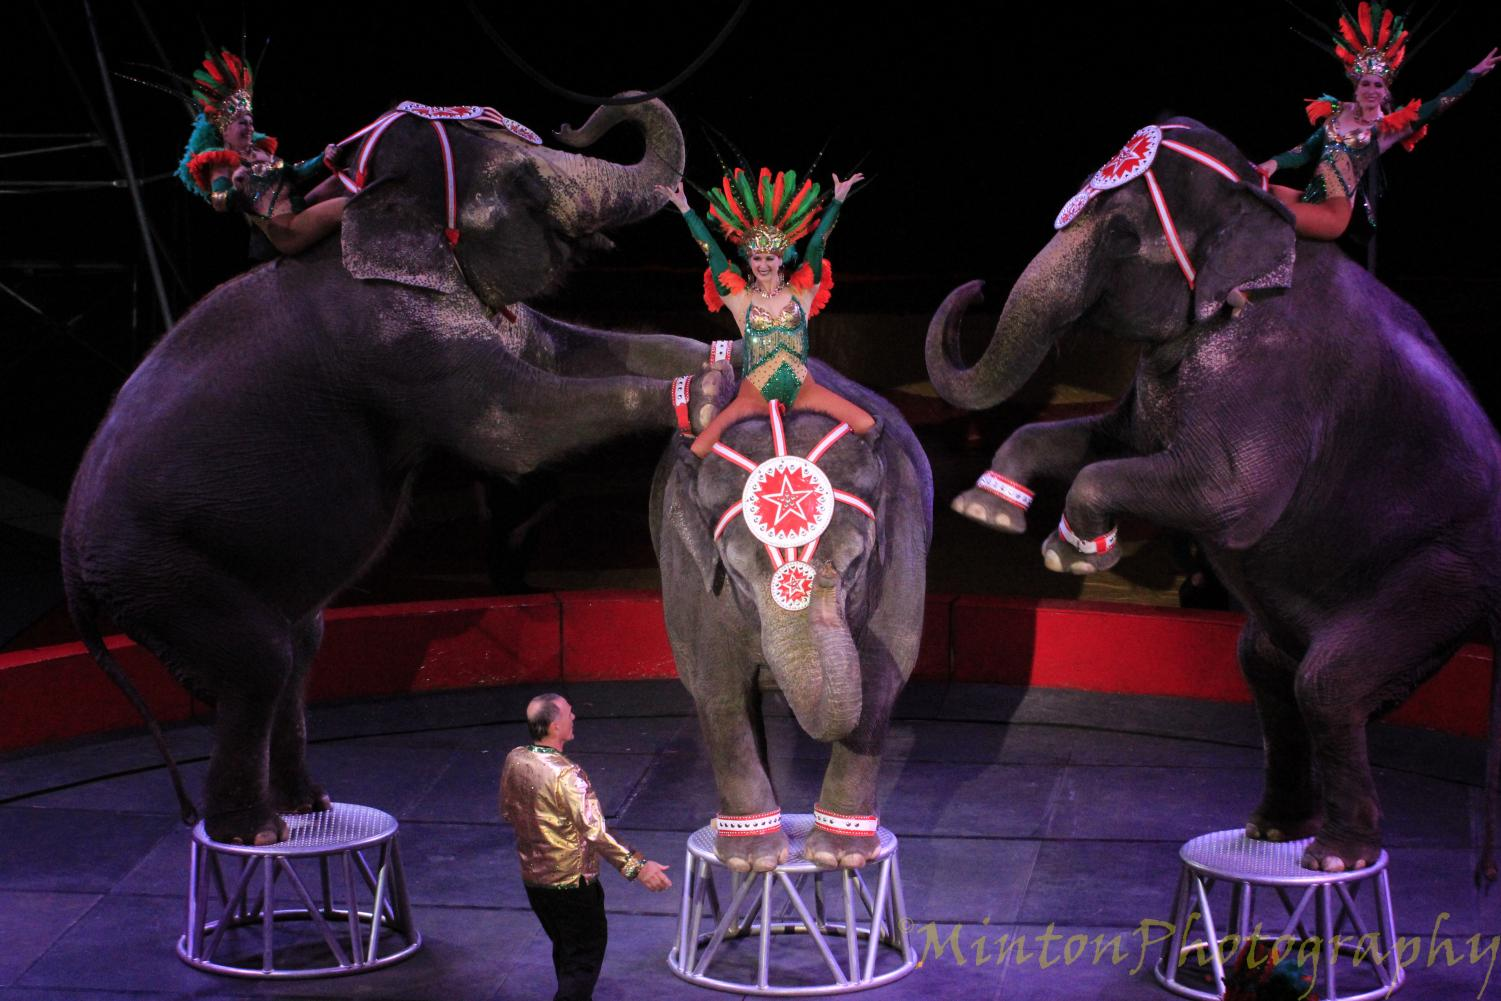 And that's all folks! The show is wrapped up with elephants and performers final segment.